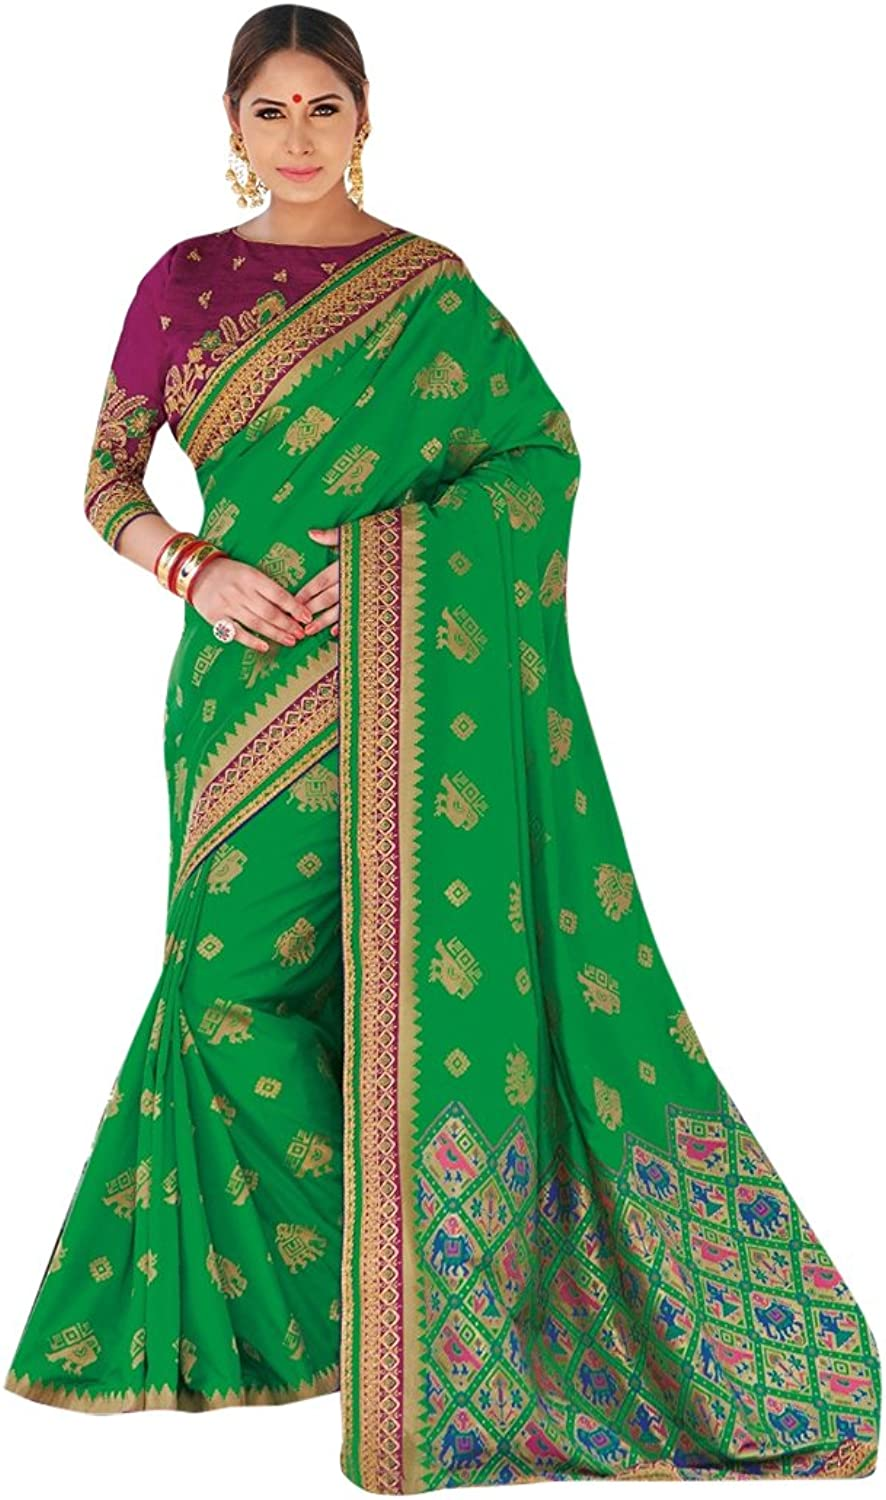 Bollywood Bridal Saree Sari for Women Collection Blouse Wedding Party Wear Ceremony 822 14